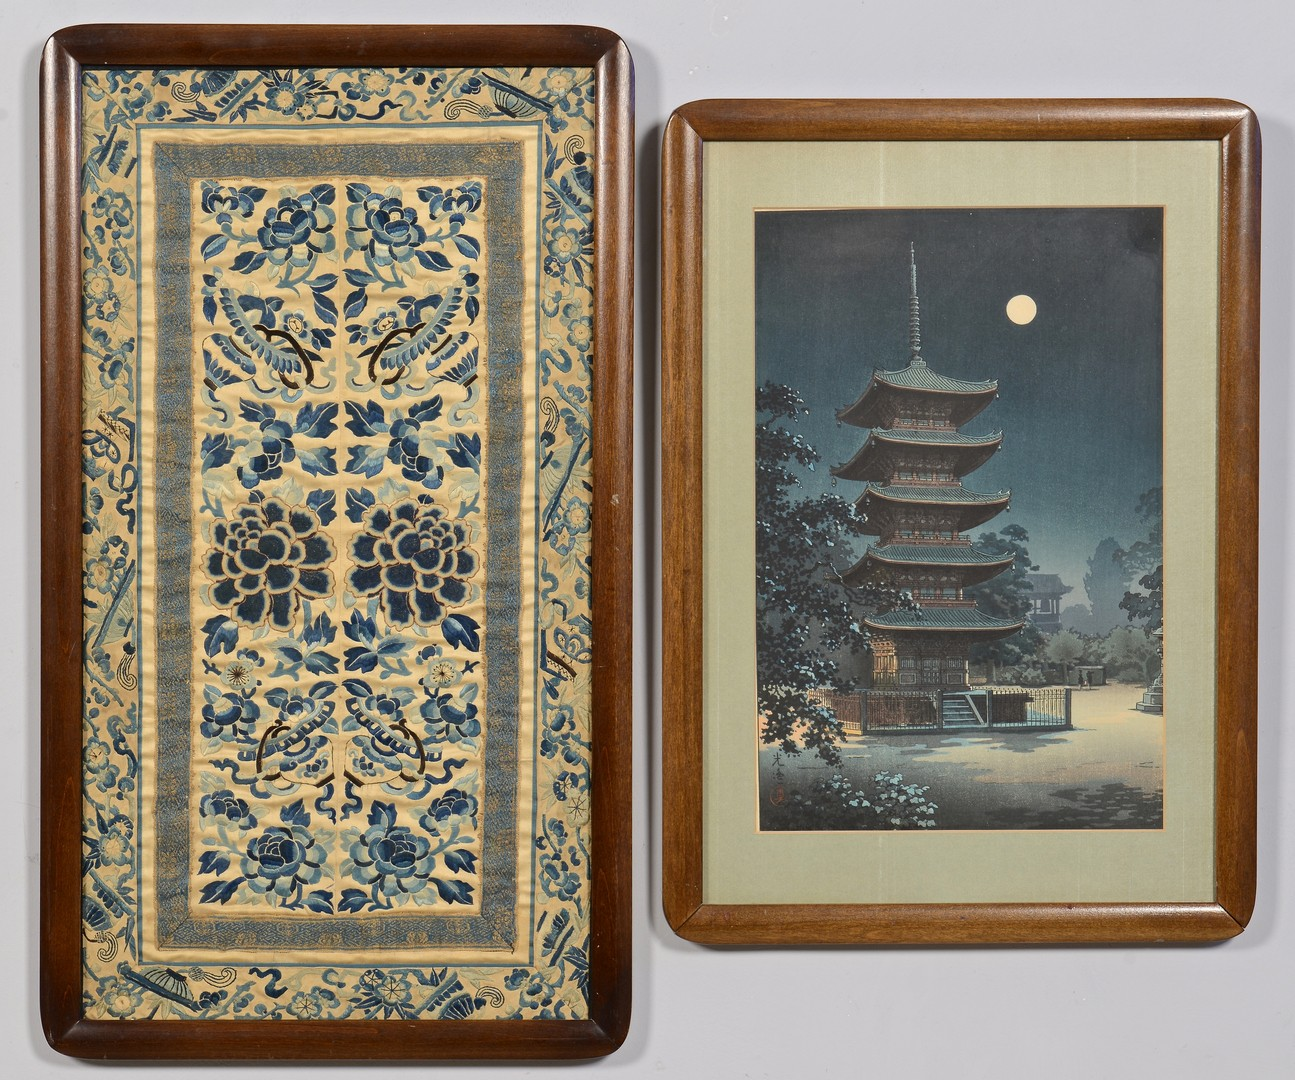 Lot 725: Chinese Embroidery & Koitsu Wood Block